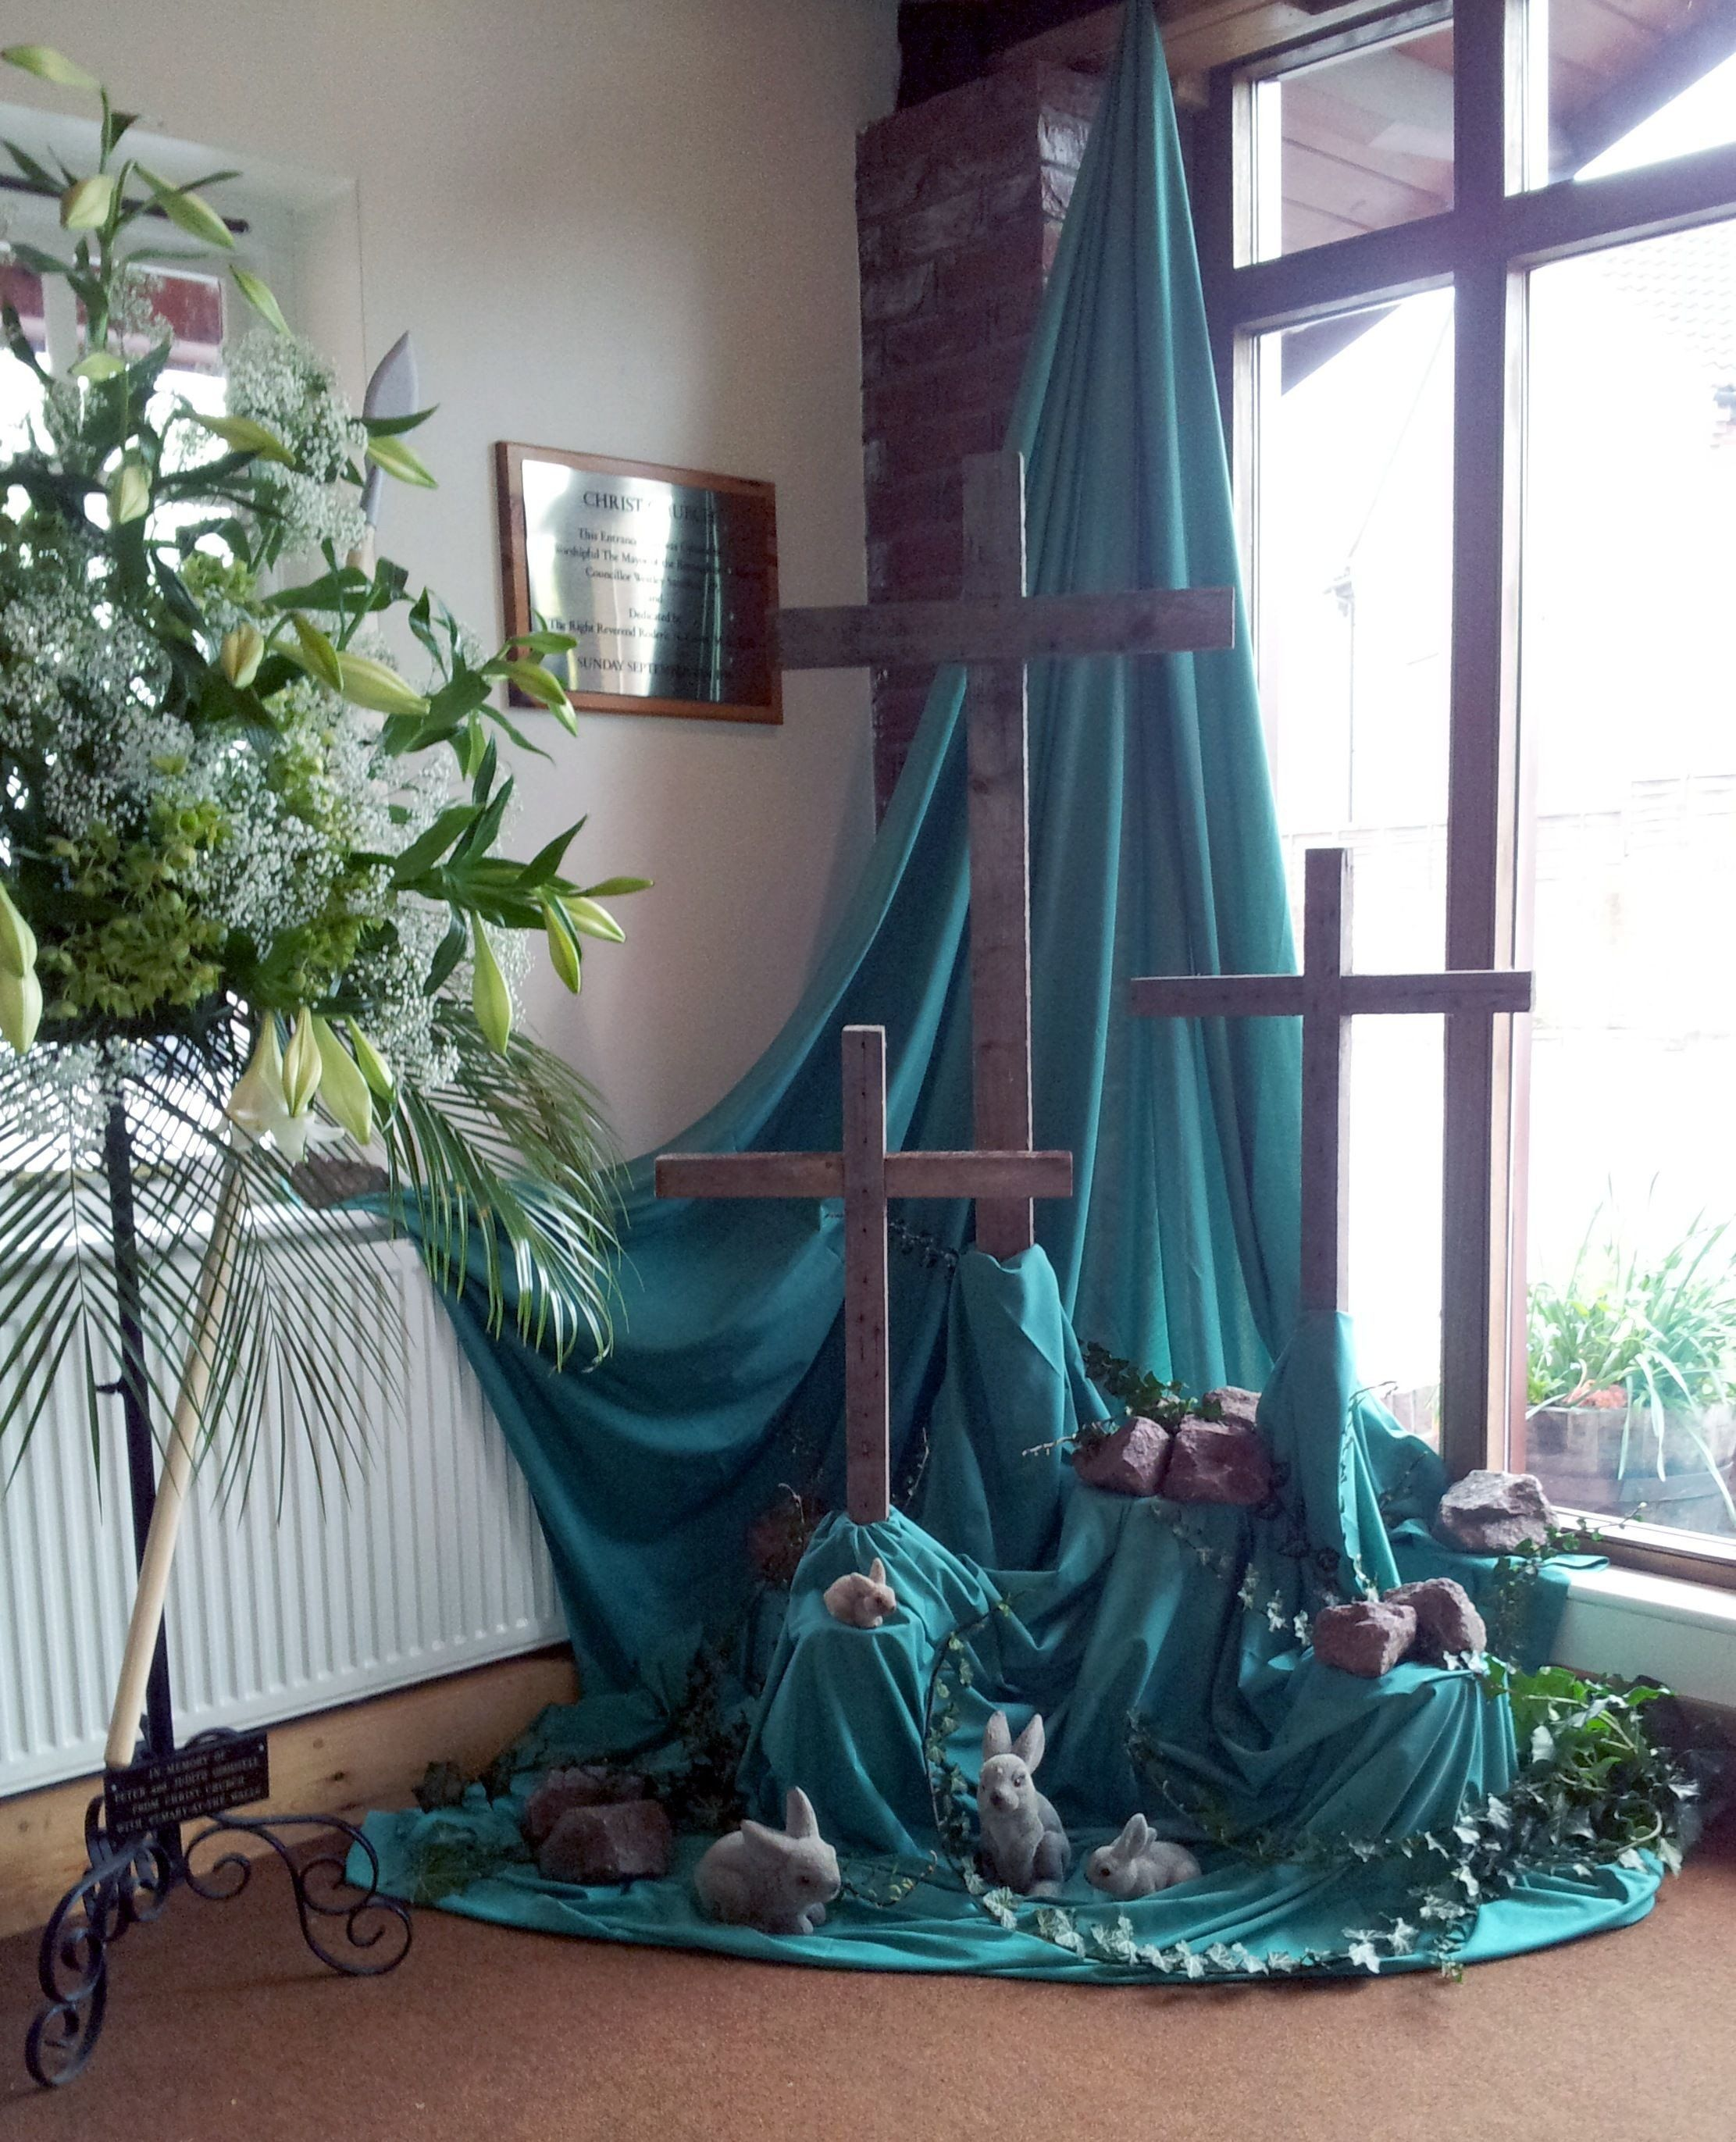 Easter Decoration Ideas For Church Awesome Pin By Rita Macedo On Good Friday Church Decor Hip Church Decor Church Easter Decorations Church Altar Decorations